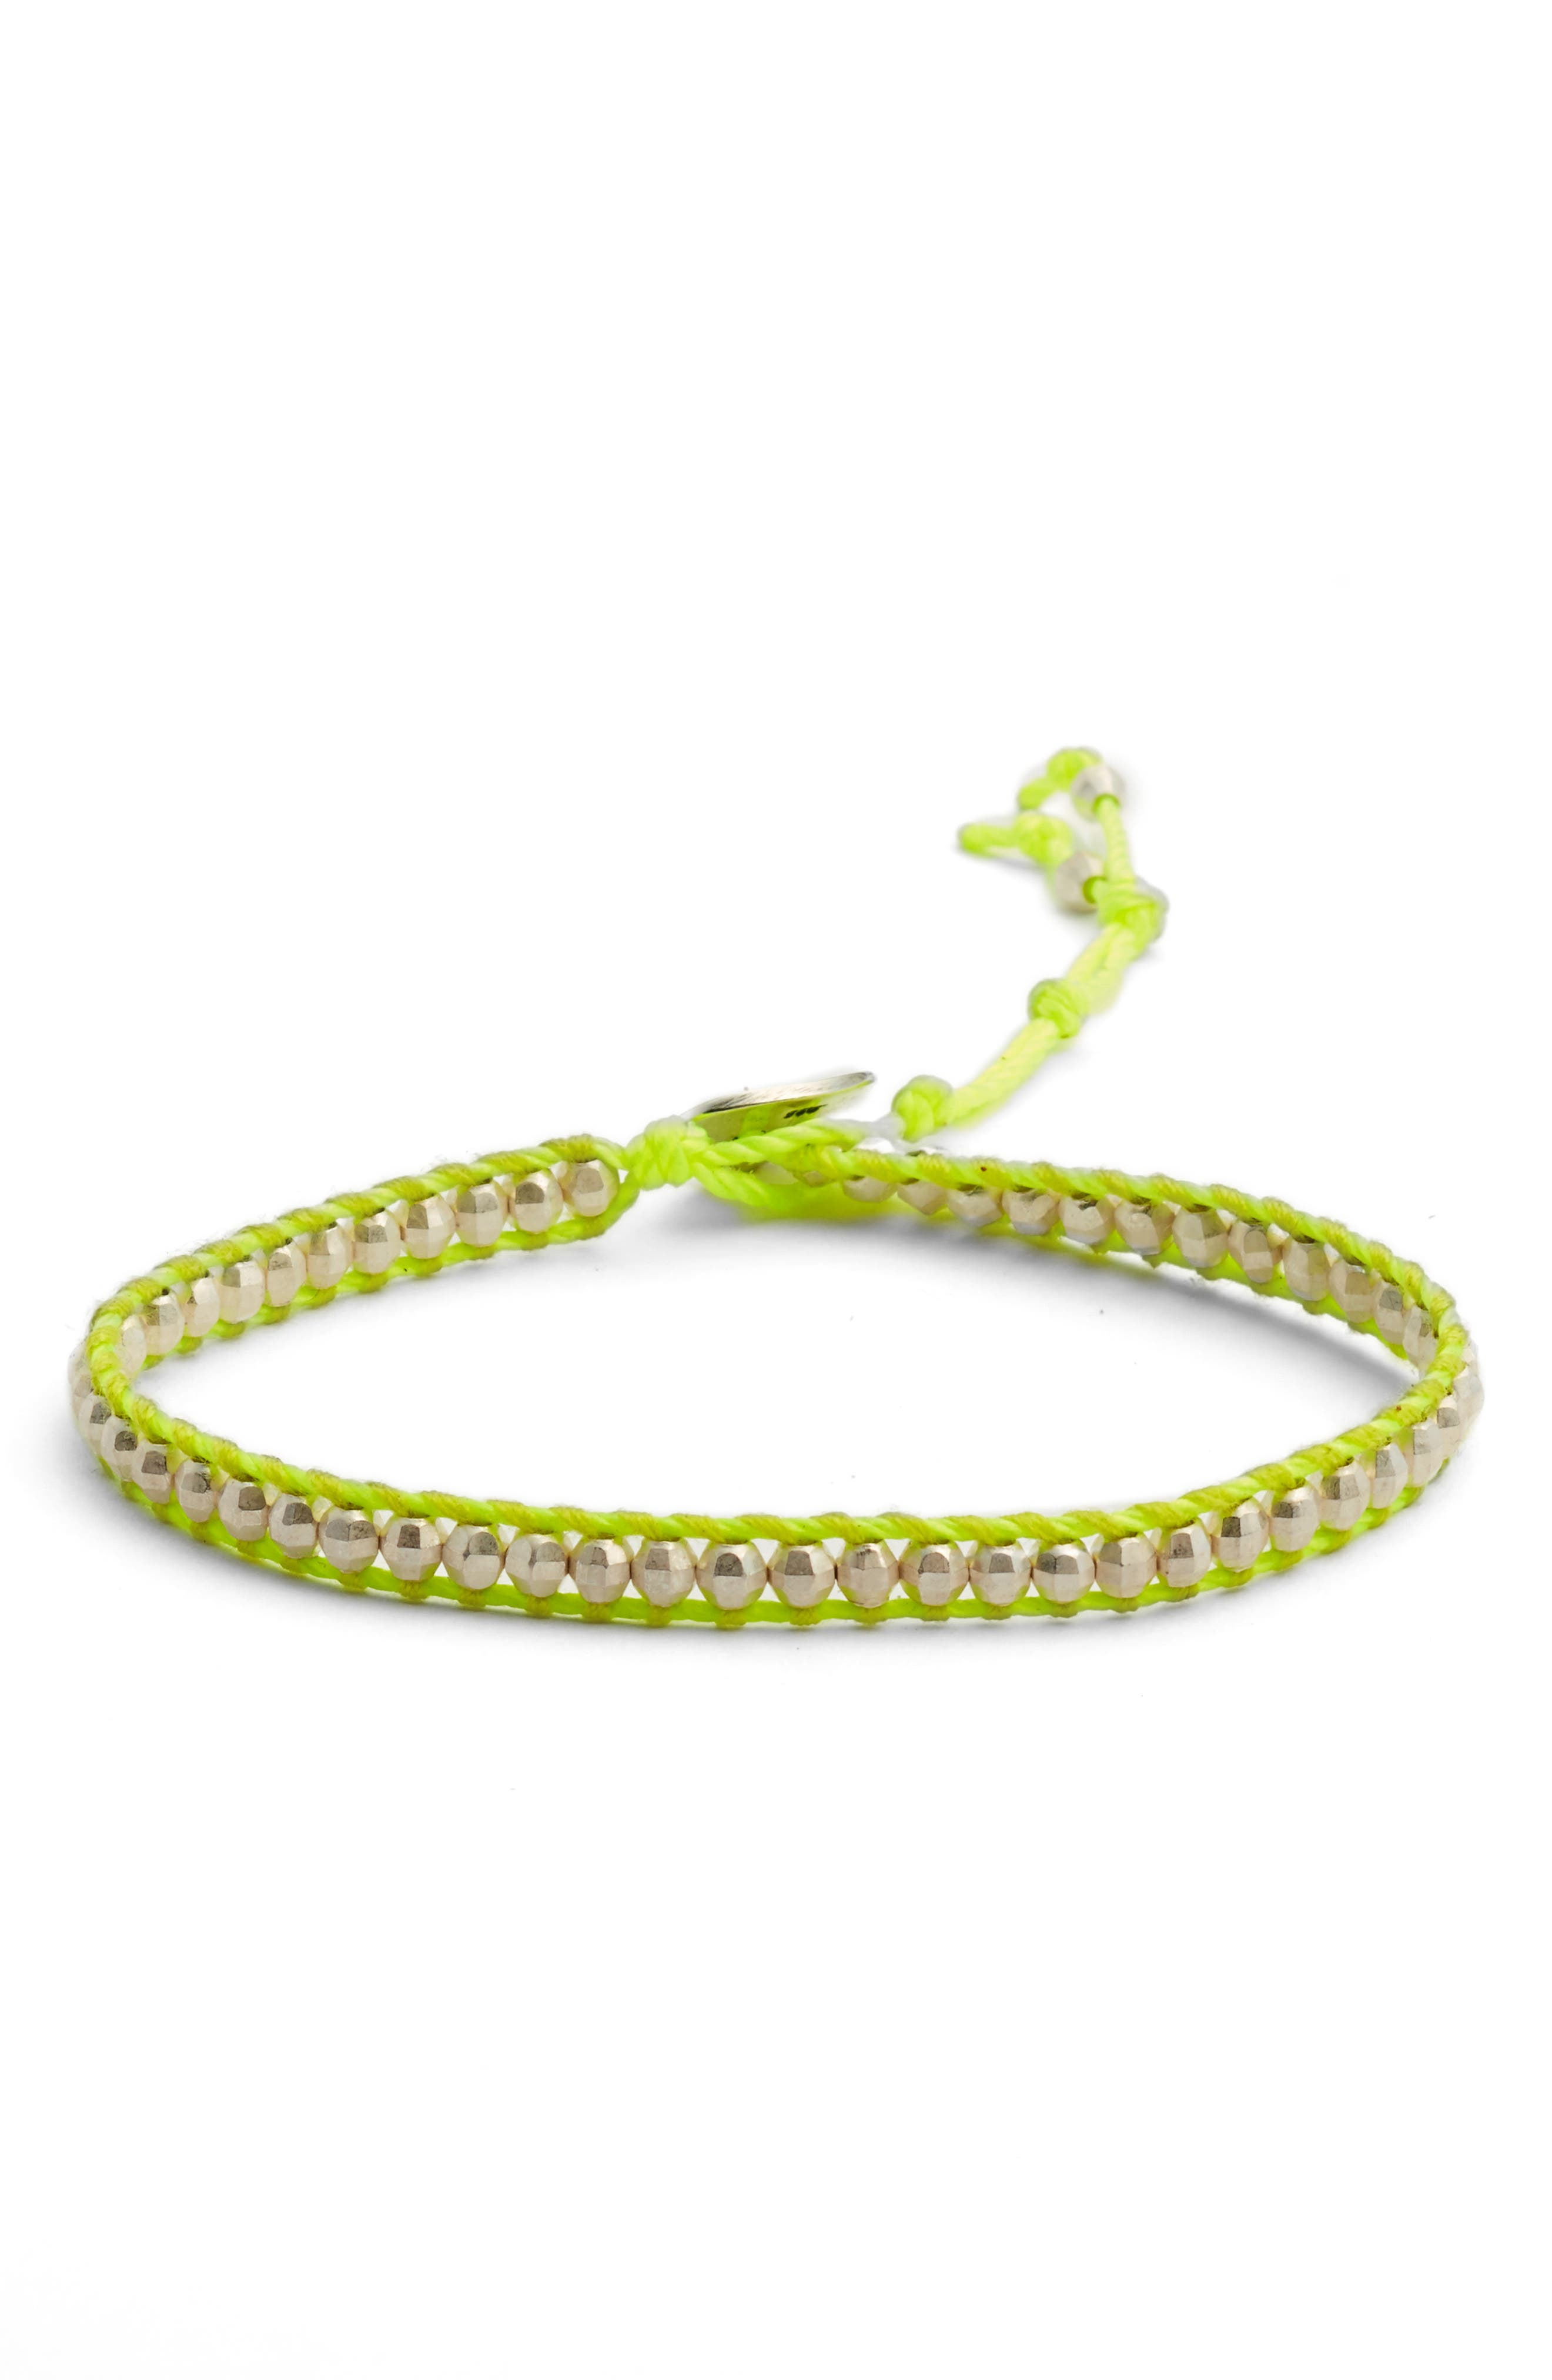 Beaded Bracelet,                             Main thumbnail 1, color,                             SILVER/ NEON YELLOW